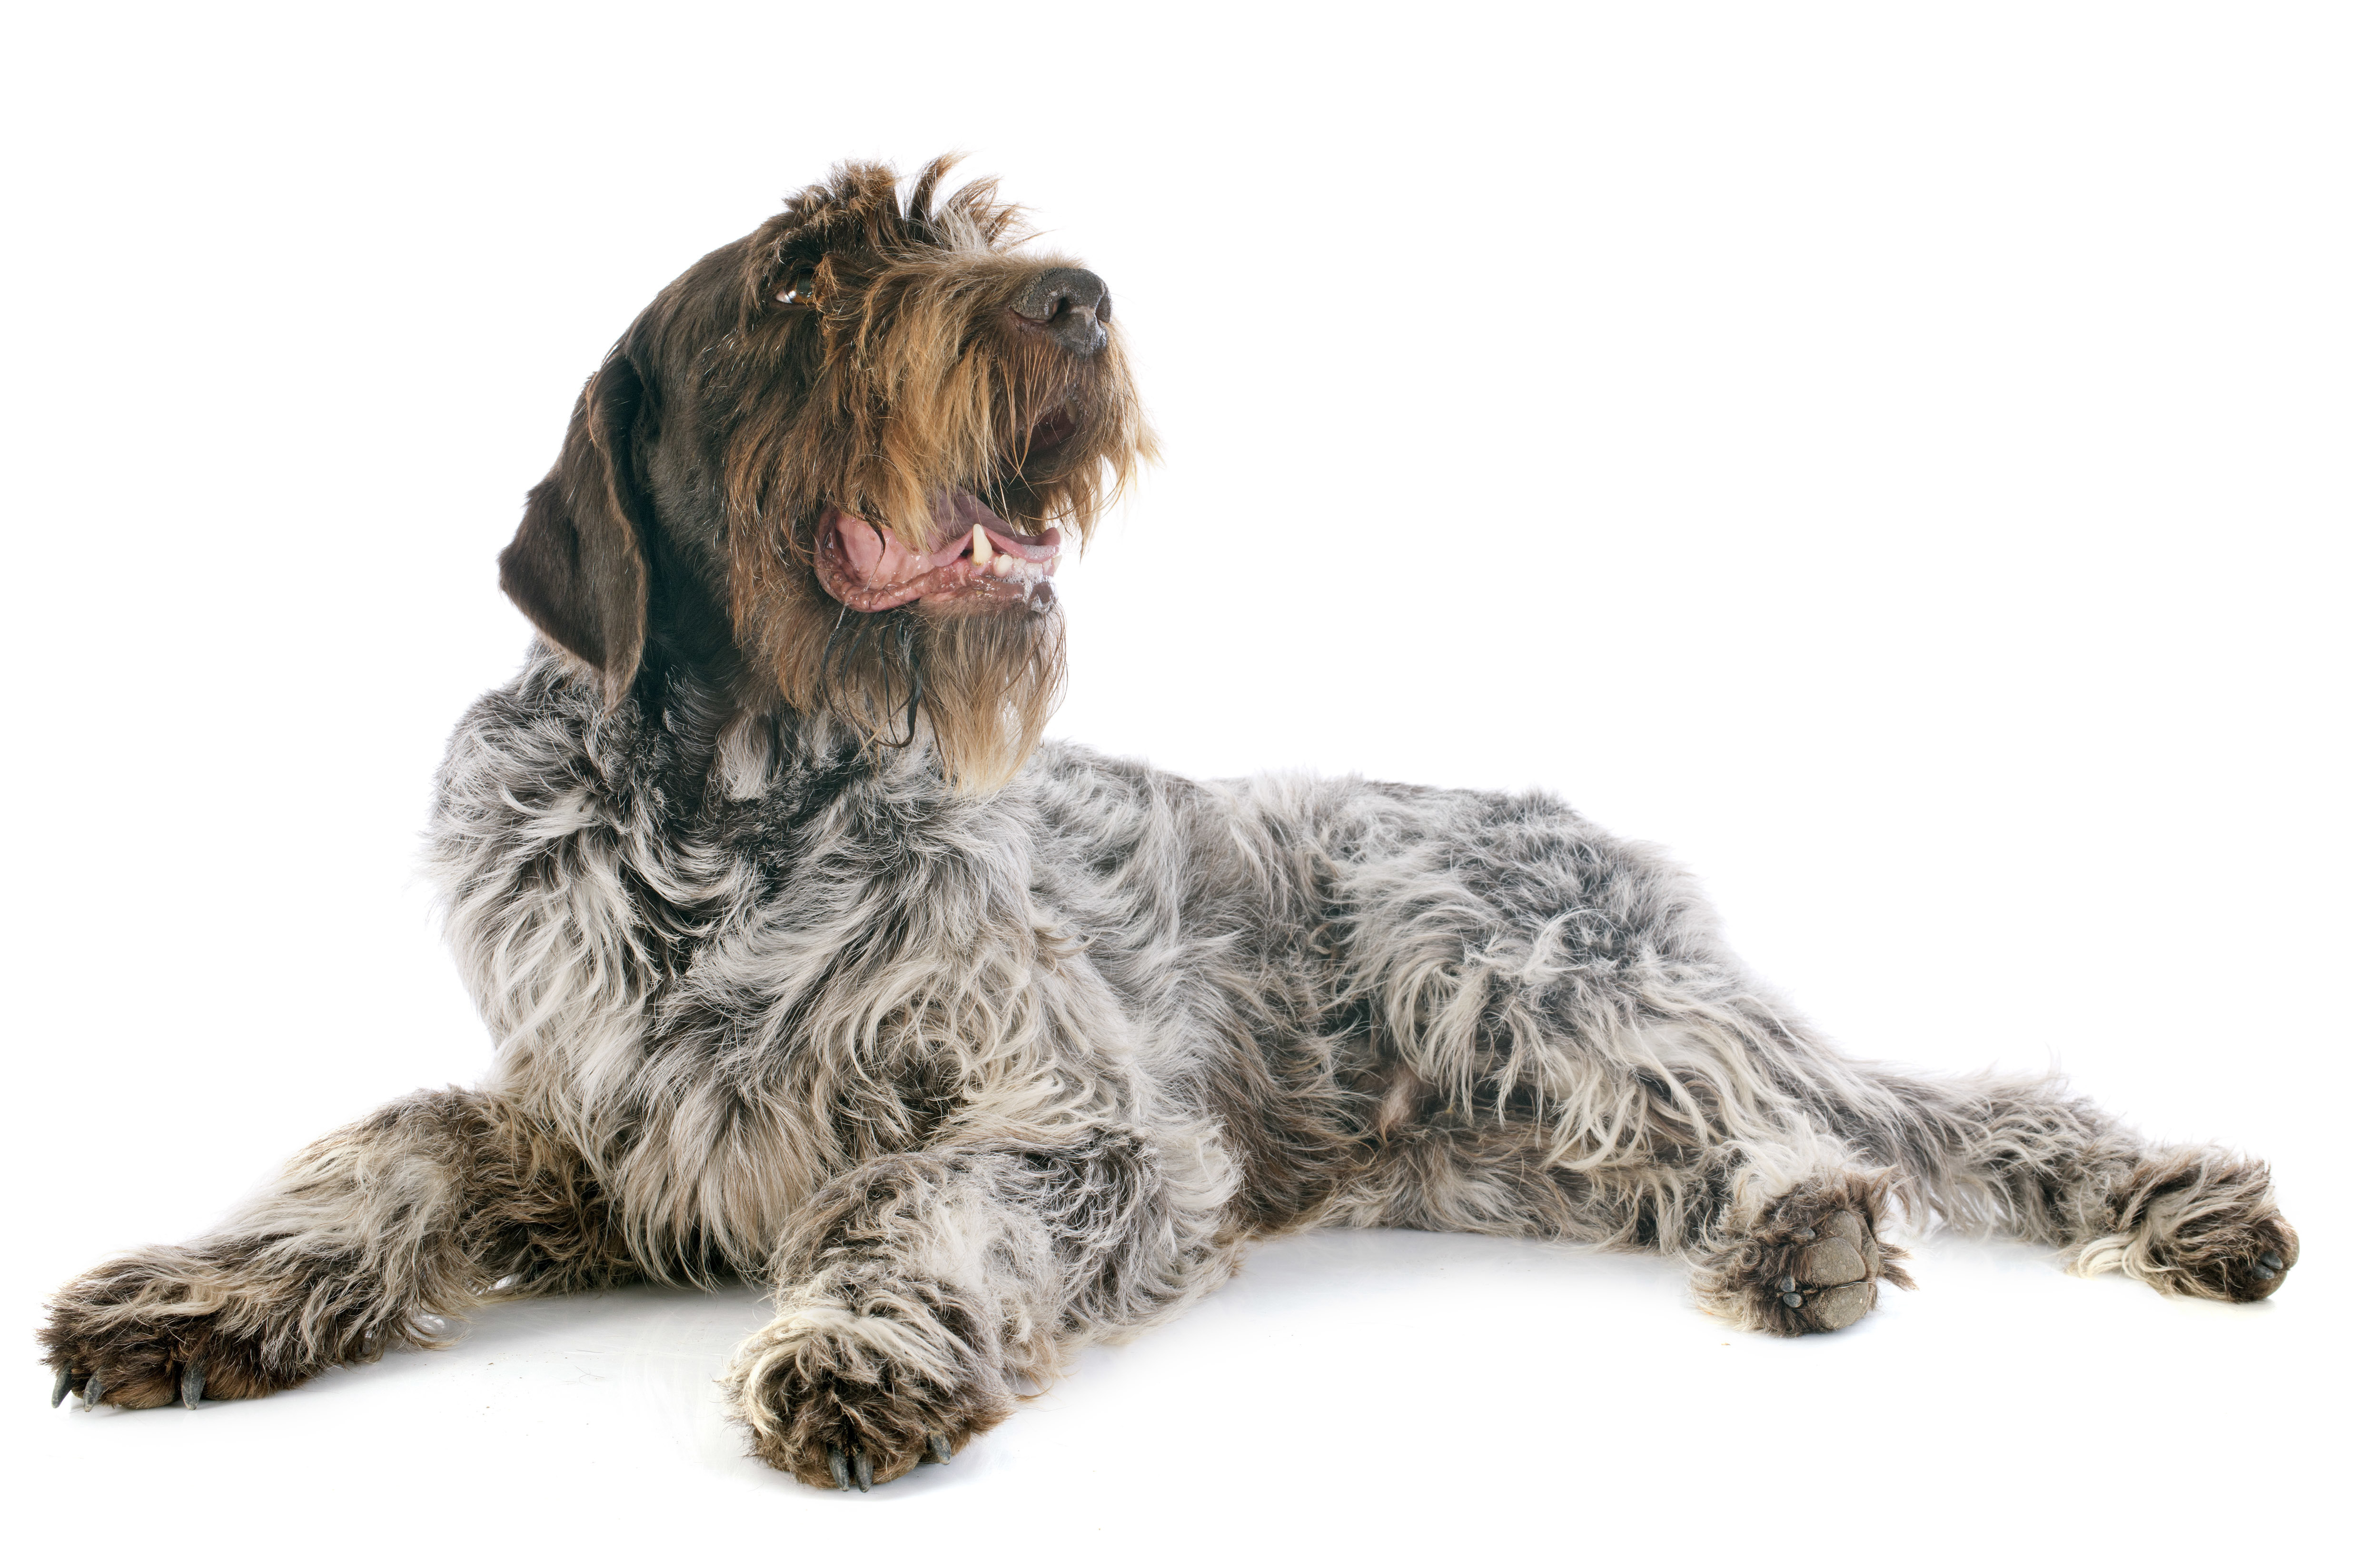 Wirehaired Pointing Griffon lying down in front of white background